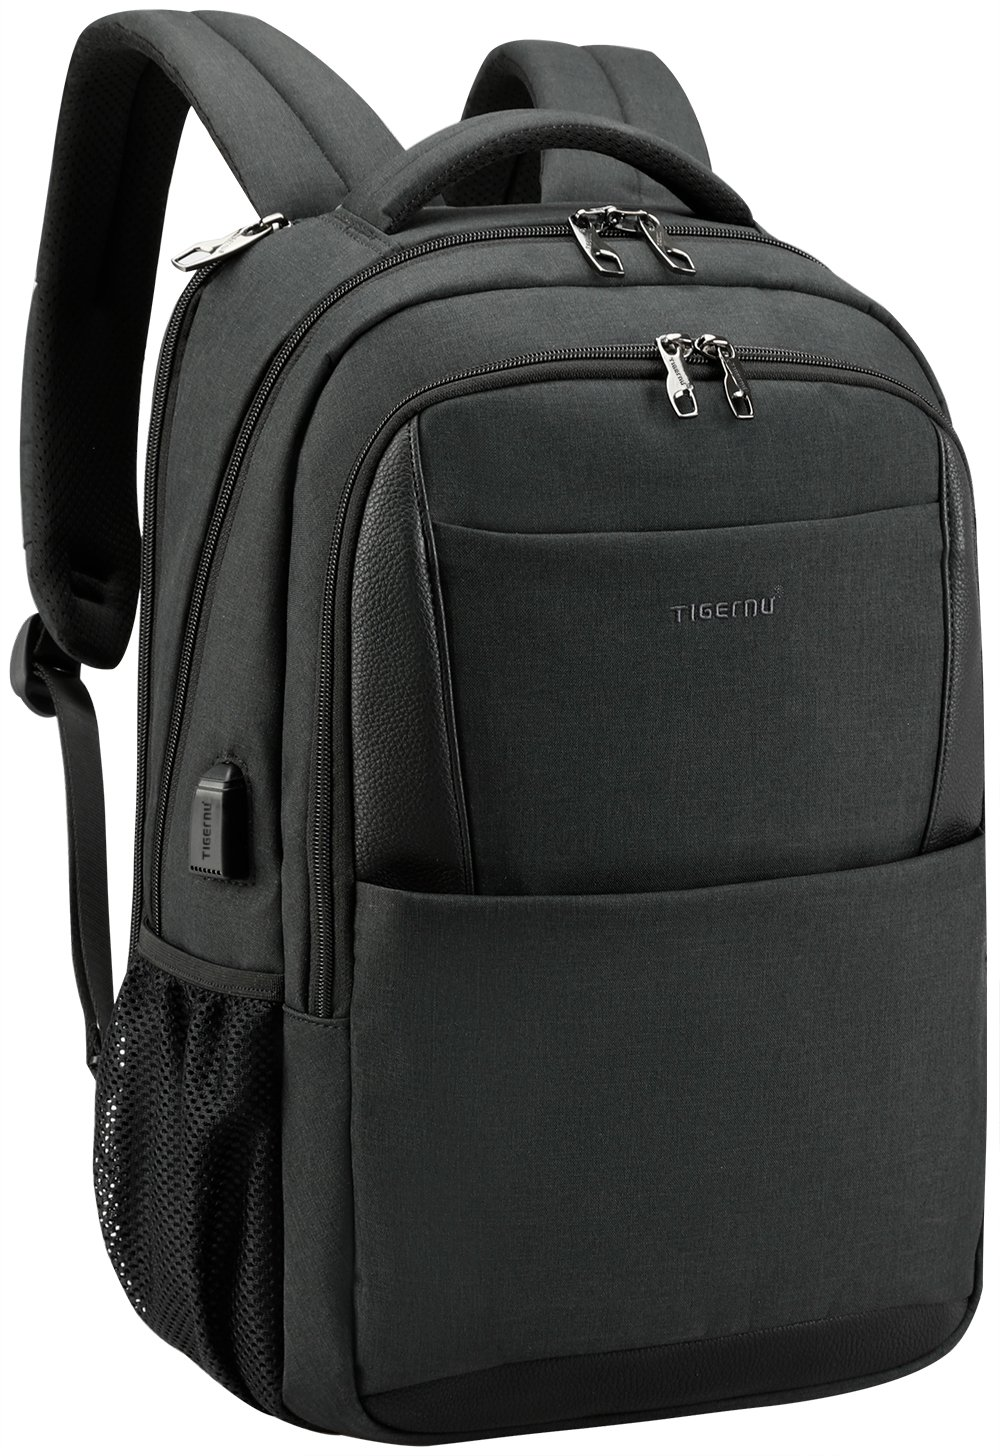 Tigernu Business Laptop Backpack,Travel Anti Theft Slim Computer Backpacks with USB Charging Port,Water Resistant Large College School Bags for Men/Women Fits Laptop & Notebook up to 15.6inch,Black by TIGERNU